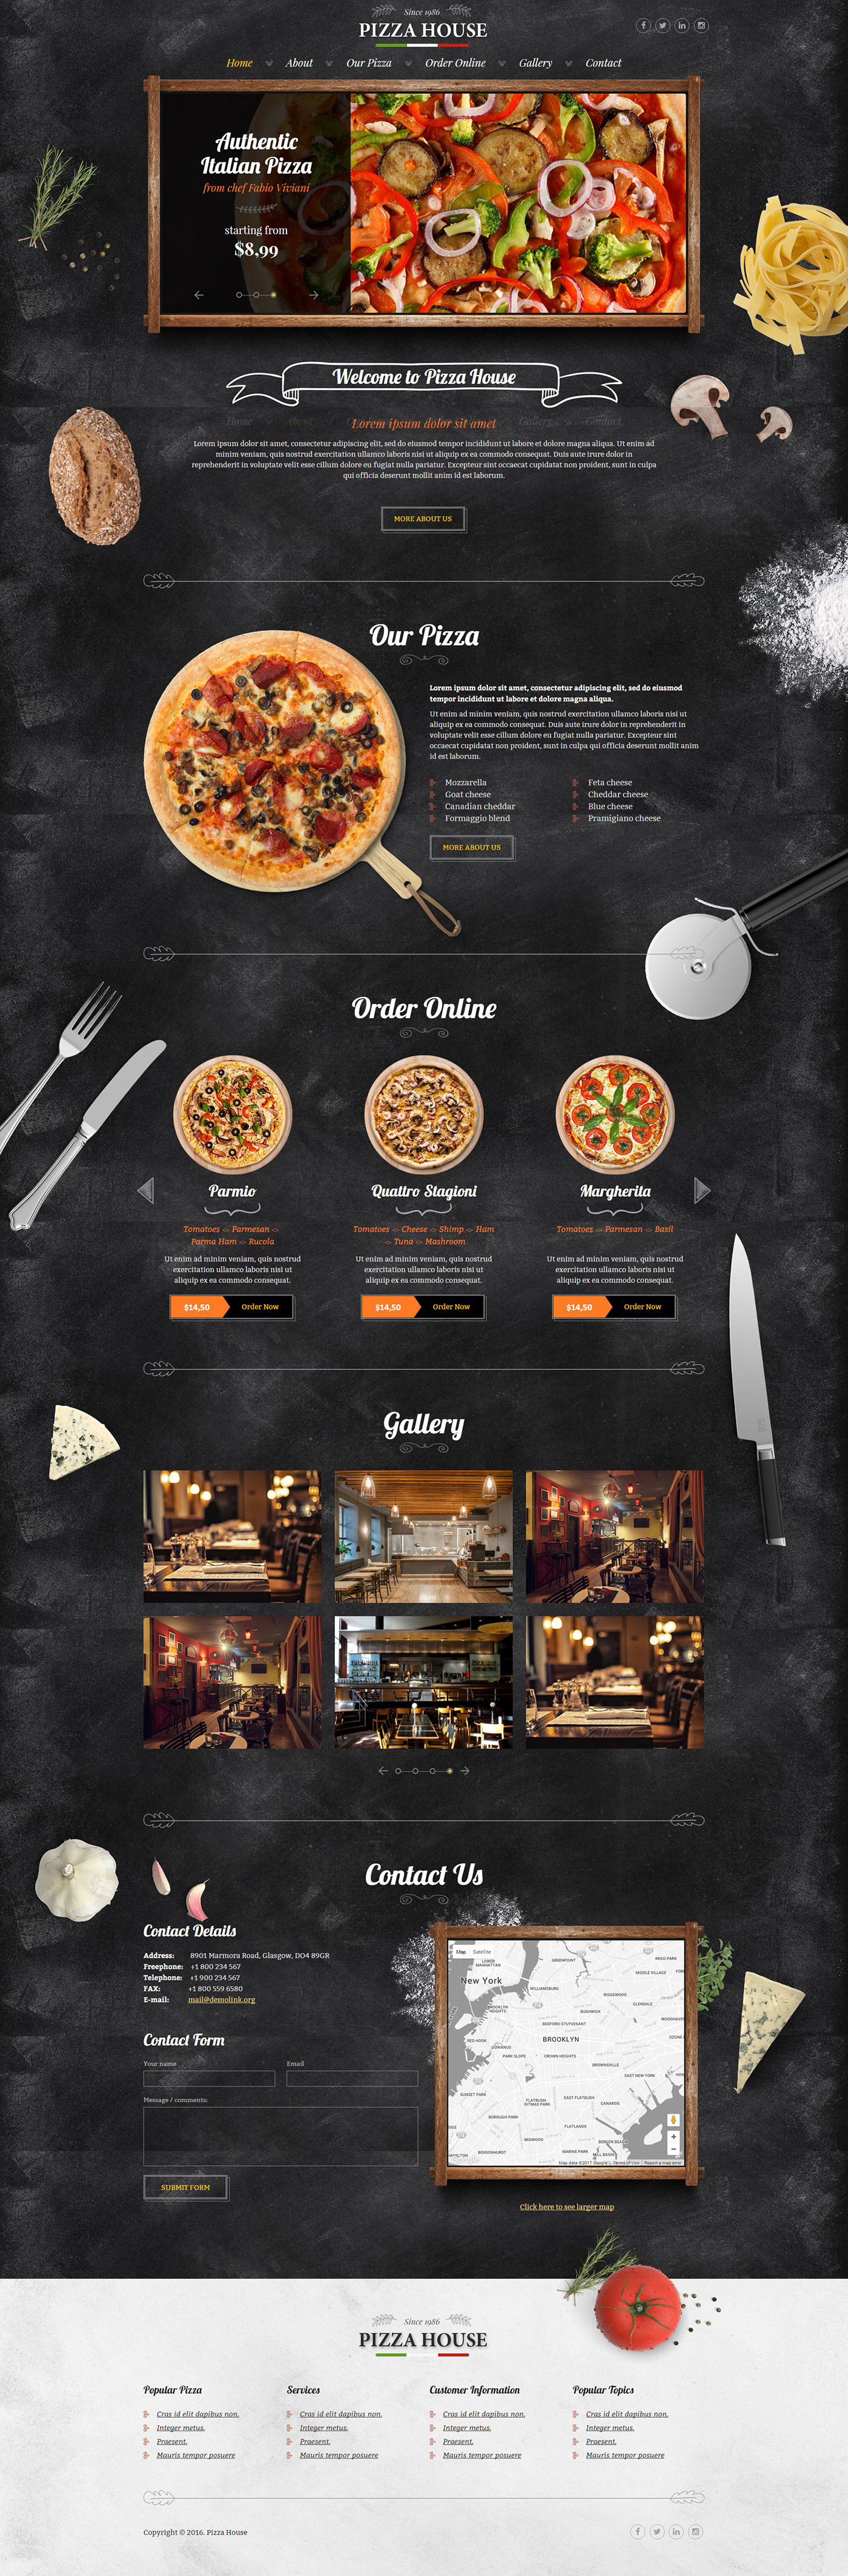 Pizza House HTML Template on Behance